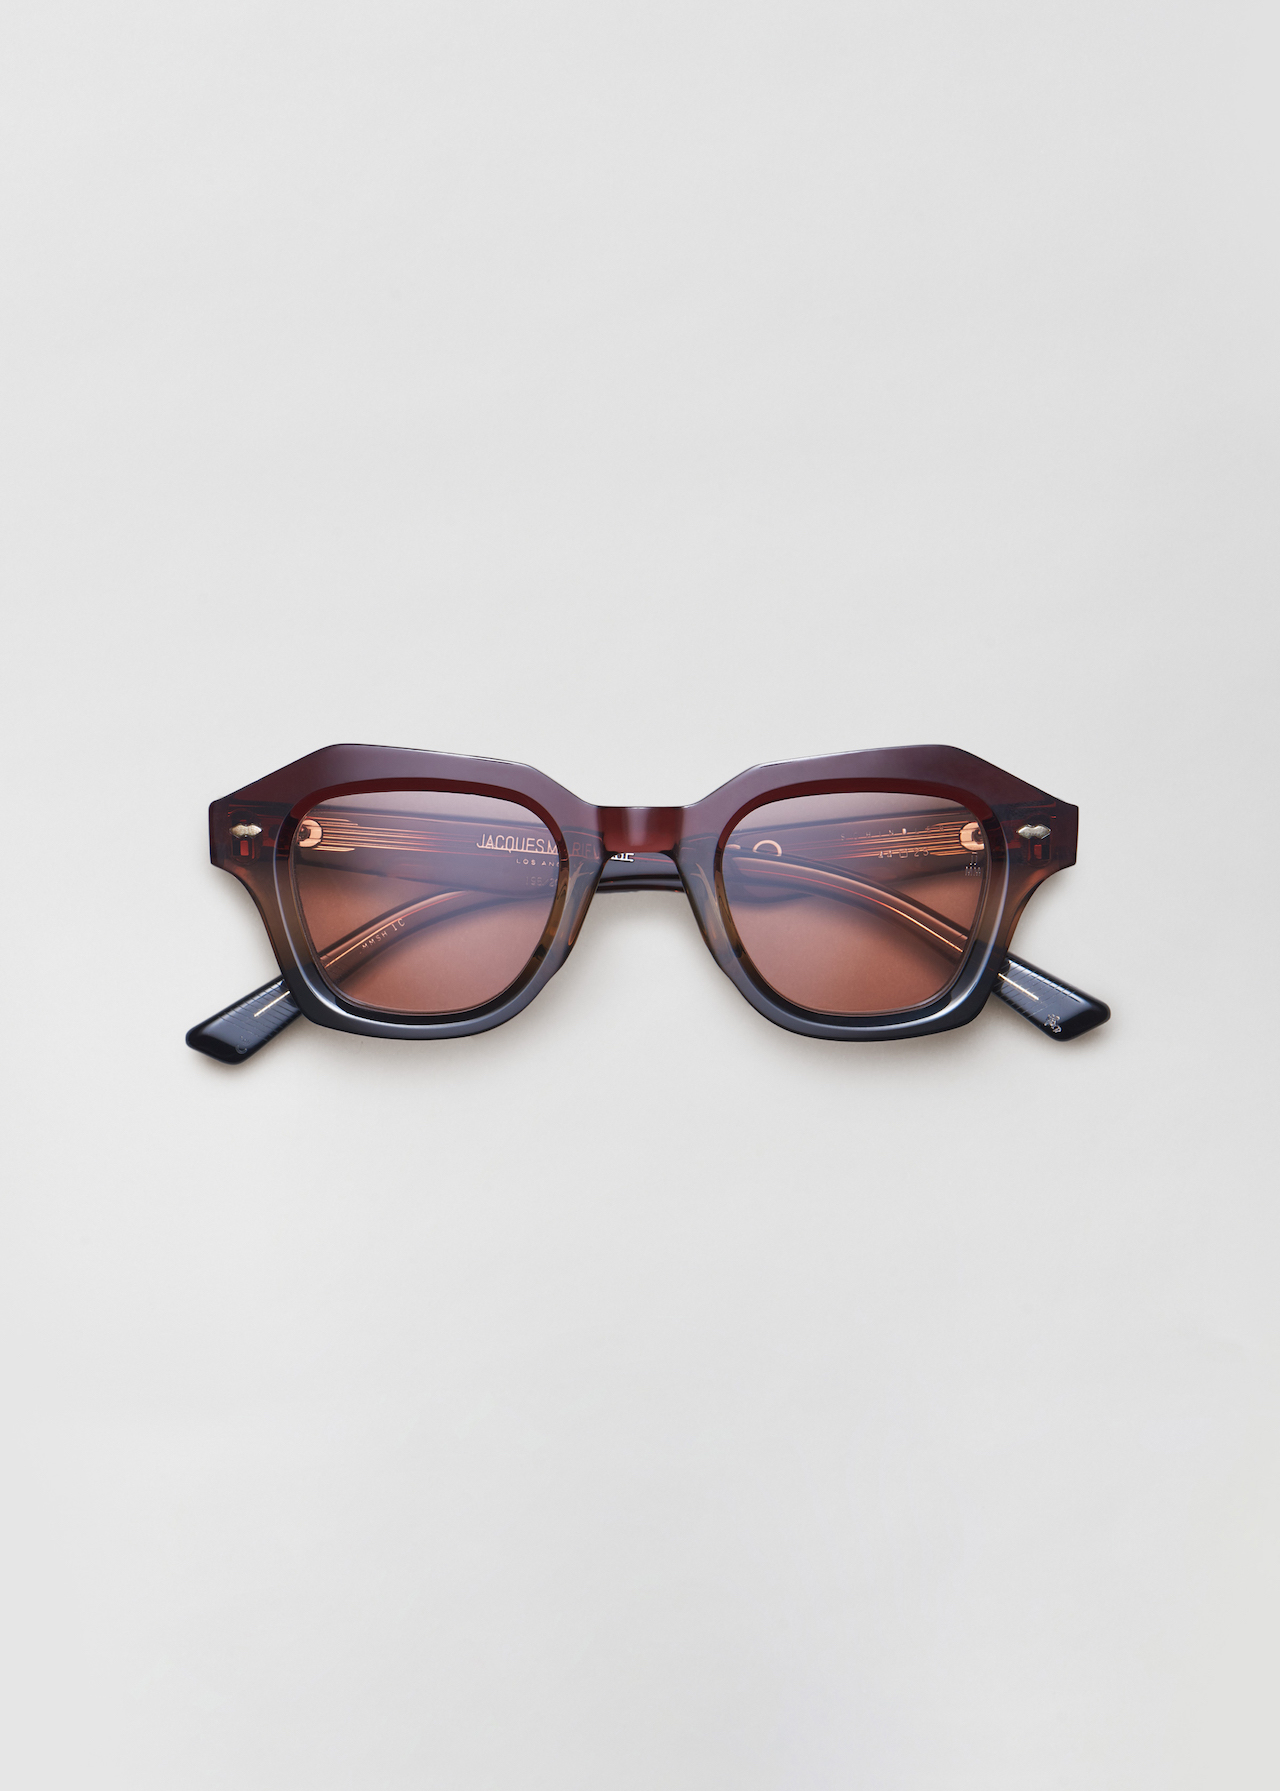 Schindler Sunglasses in Empire in Empire by Co Collections